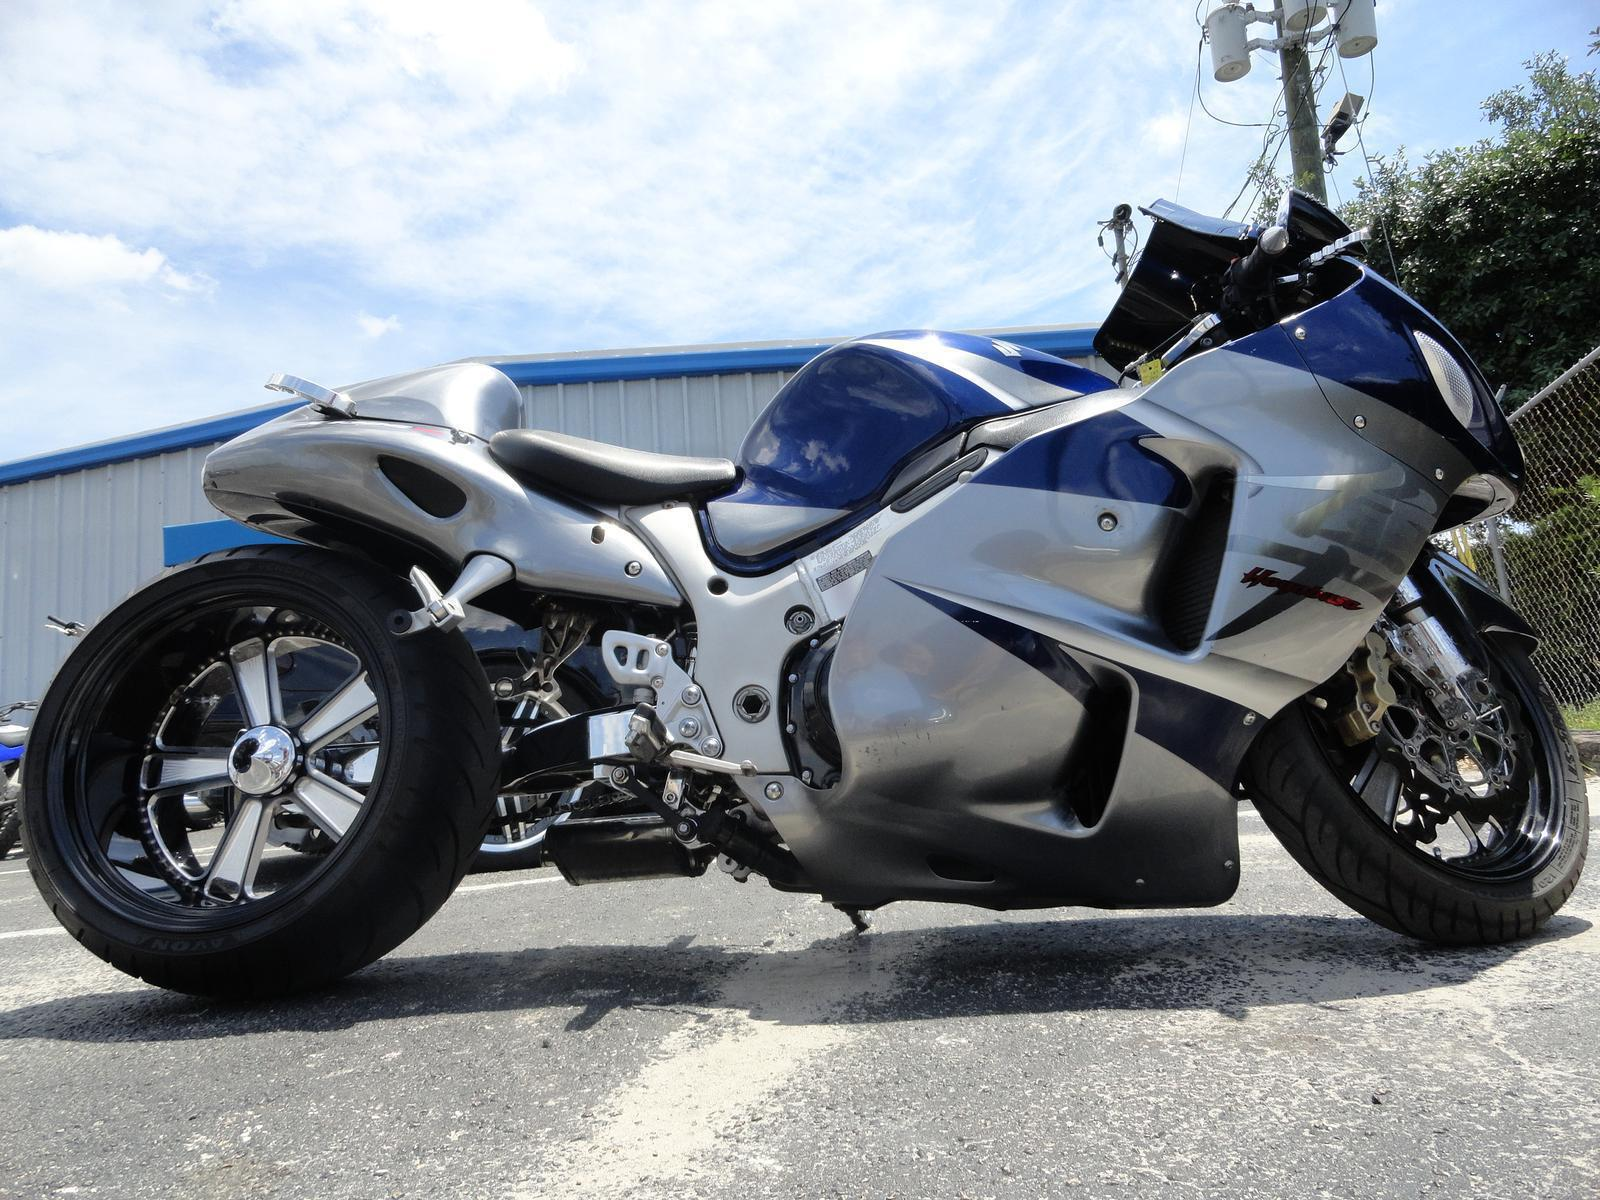 2006 Suzuki HAYABUSA 1300 for sale in Longwood, FL | Prime ...